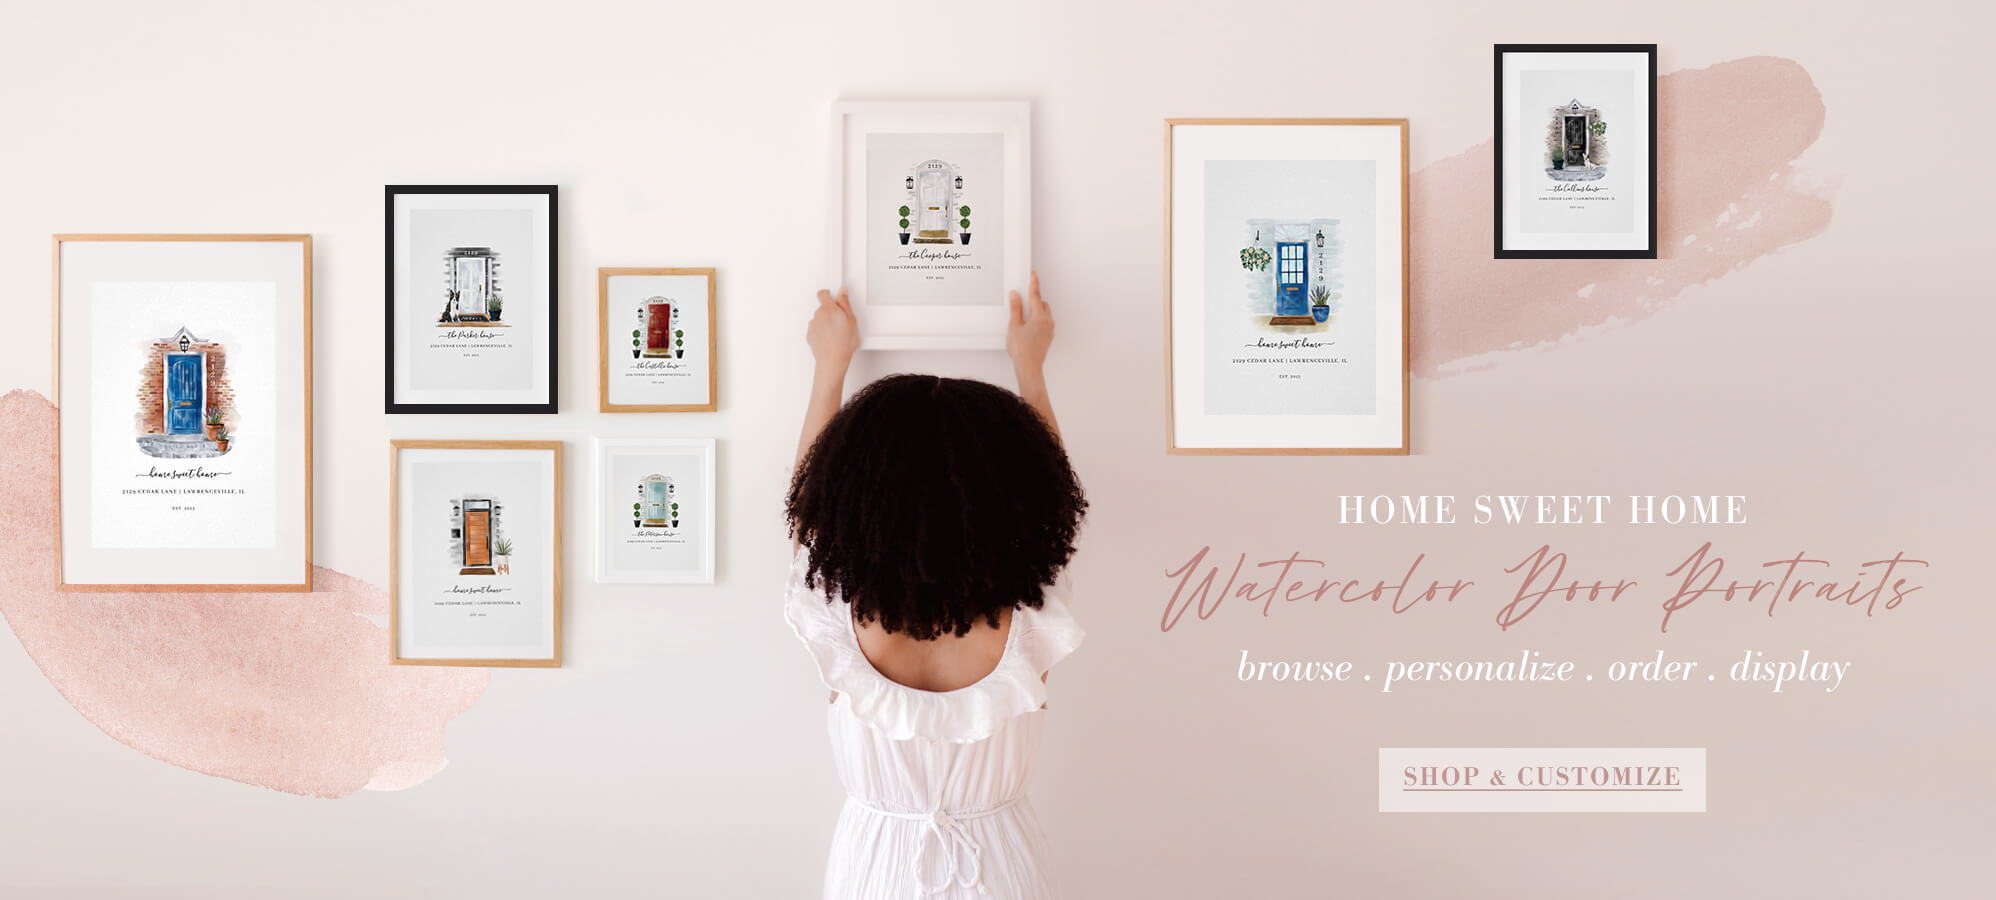 Beautiful Personalized Home And Door Portraits